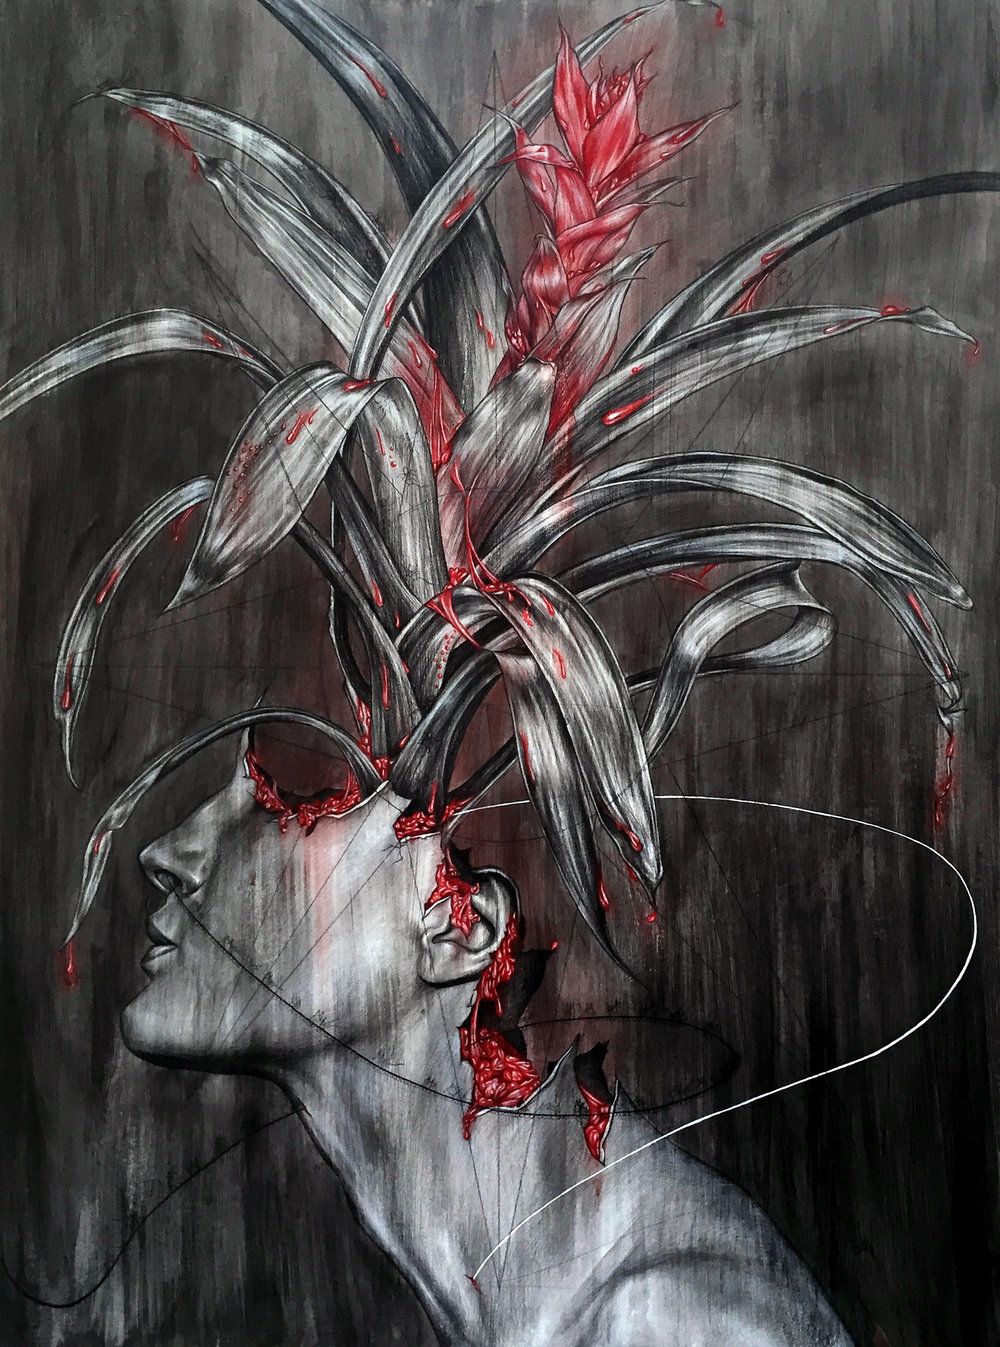 There are Thin Dead Things in the Bromeliads